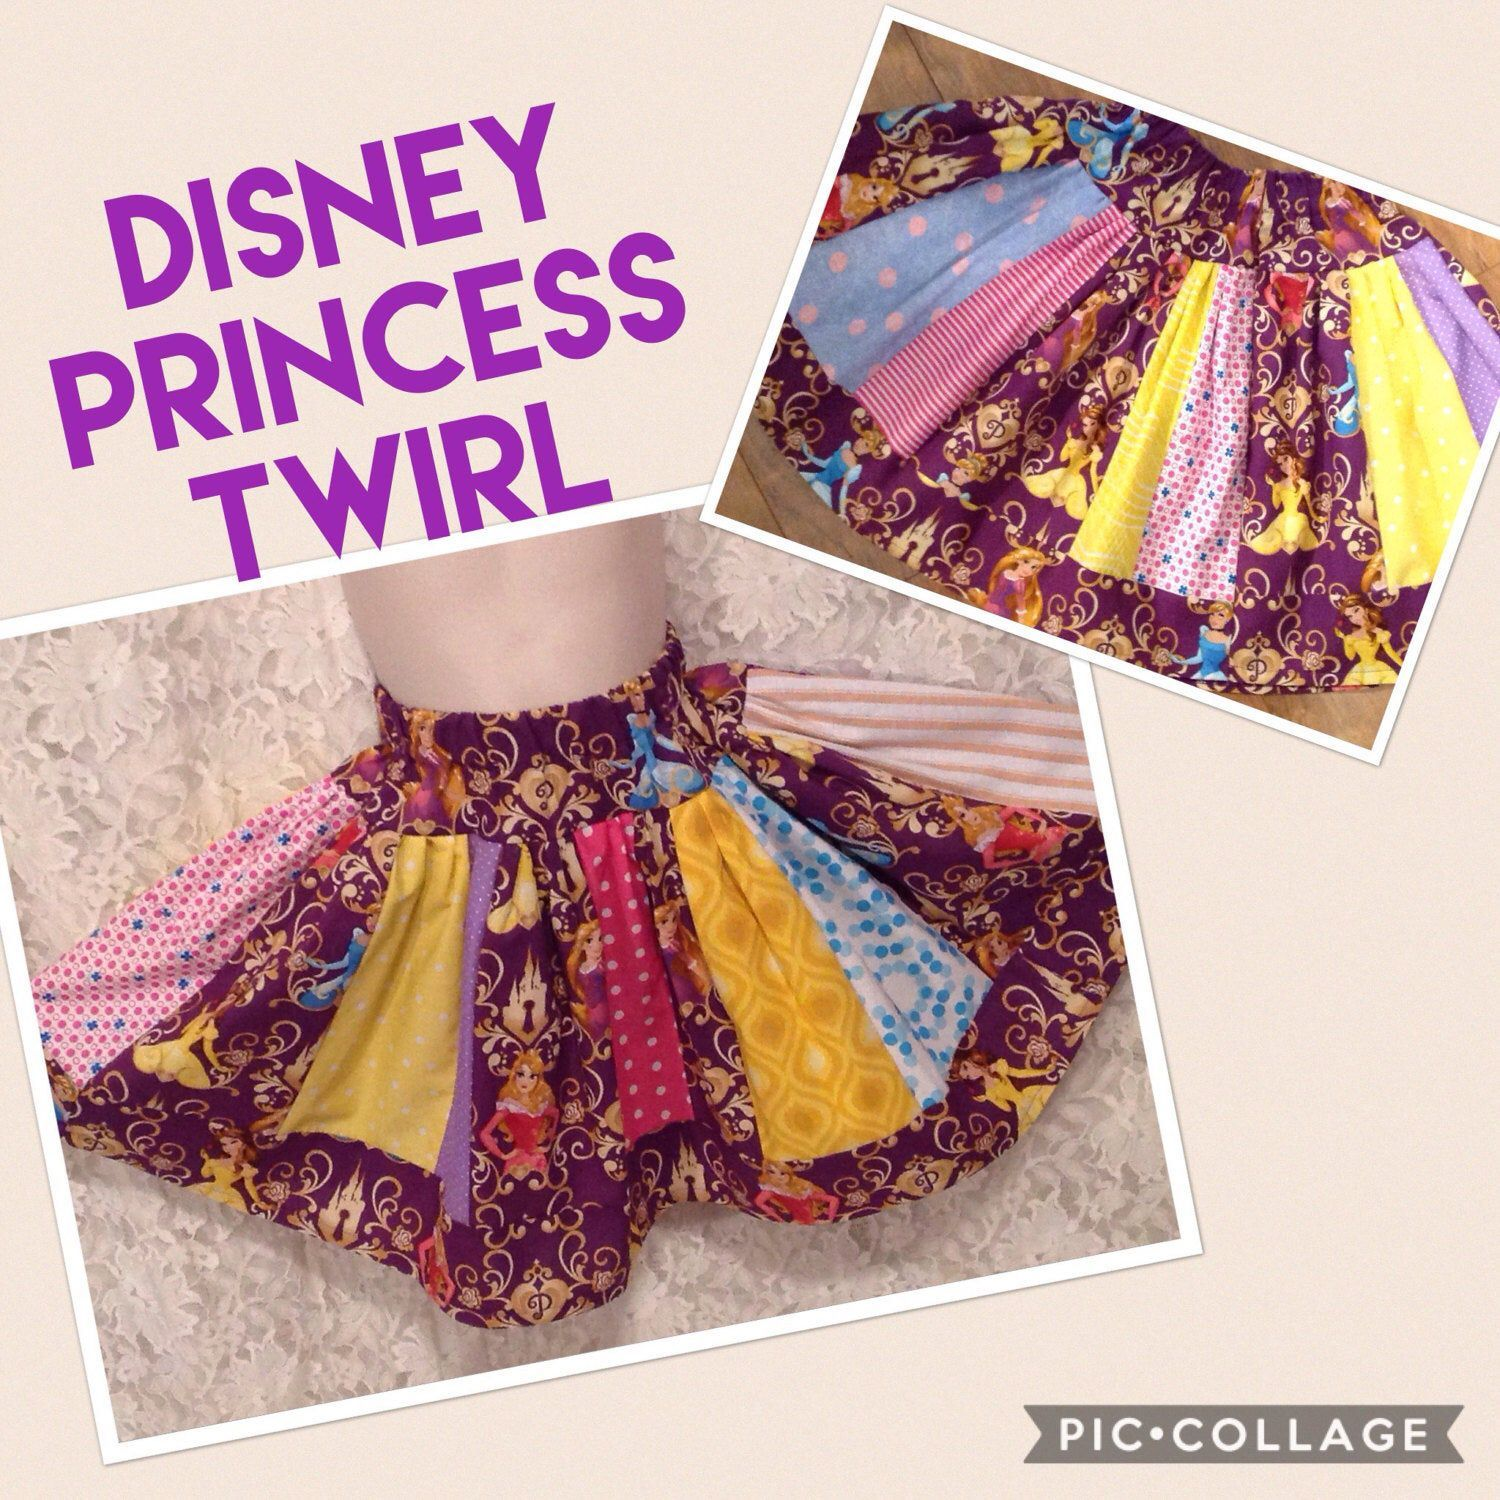 Princess Stripey Twirl Skirt * READY TO SHIP Disney boutique for girl size 3 4 pageant casual handmade Cinderella Belle Aurora #twirlskirt Excited to share this item from my #etsy shop: Princess Stripey Twirl Skirt * READY TO SHIP Disney boutique for girl size 3 4 pageant casual handmade Cinderella Belle Aurora #twirlskirt